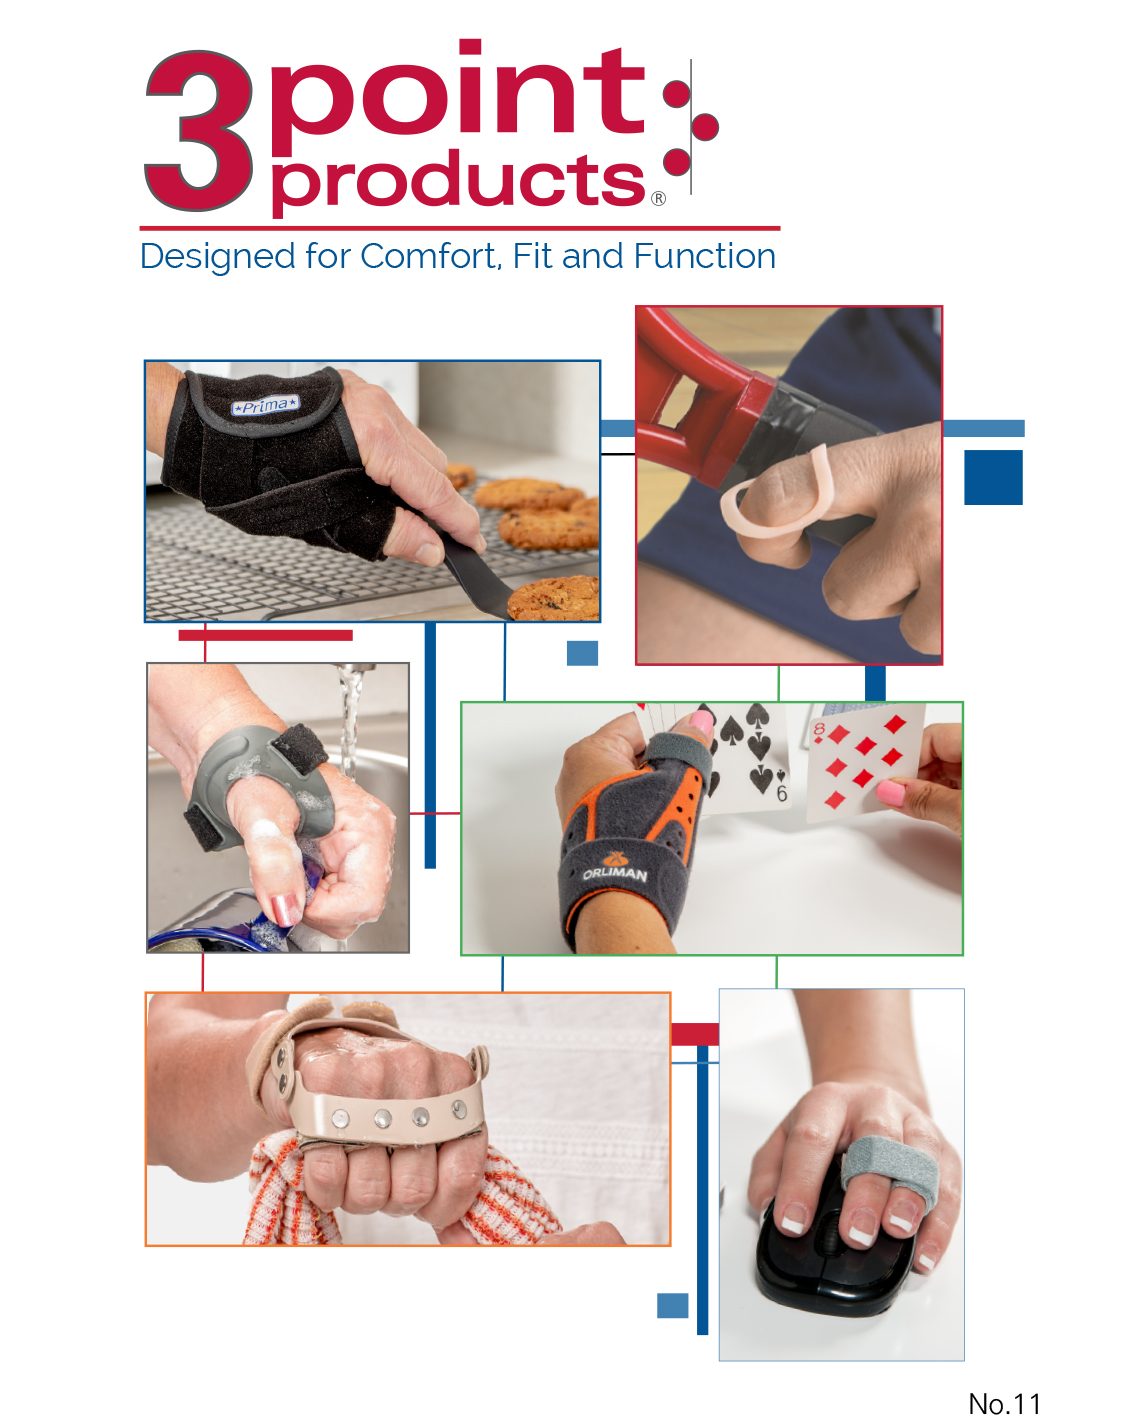 N011 catalog cover